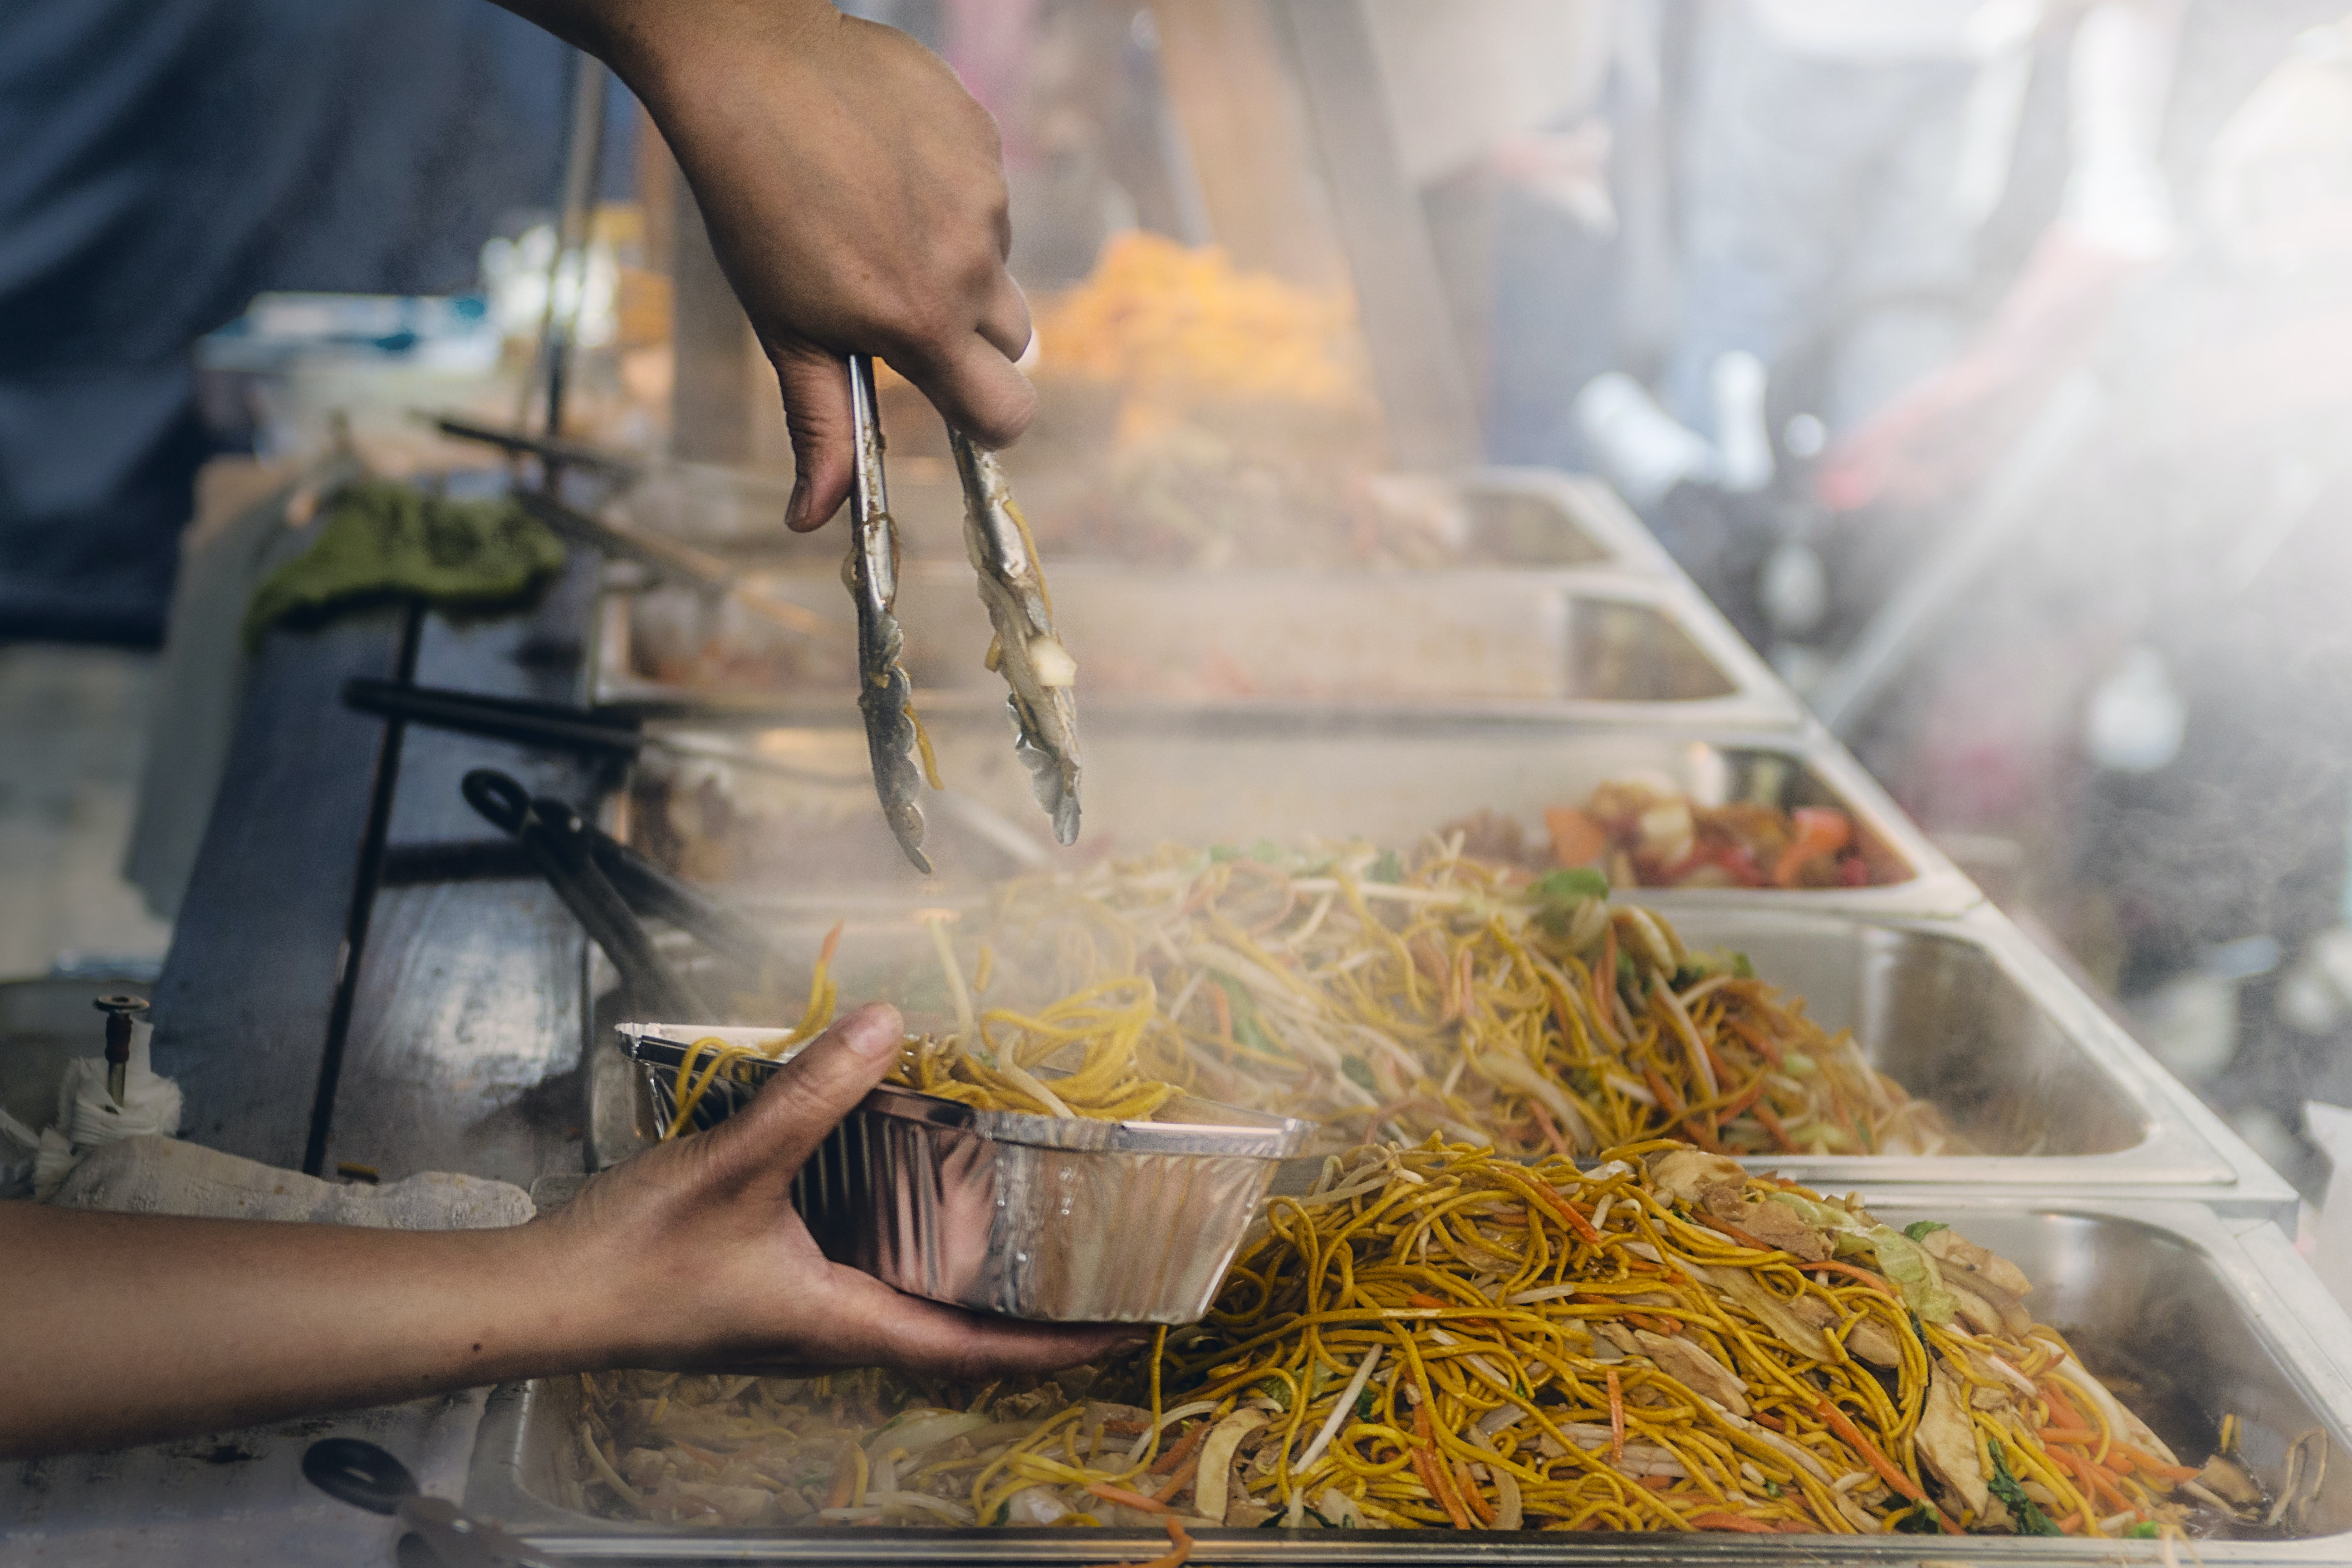 A cook putting Asian noodles into a take-out box